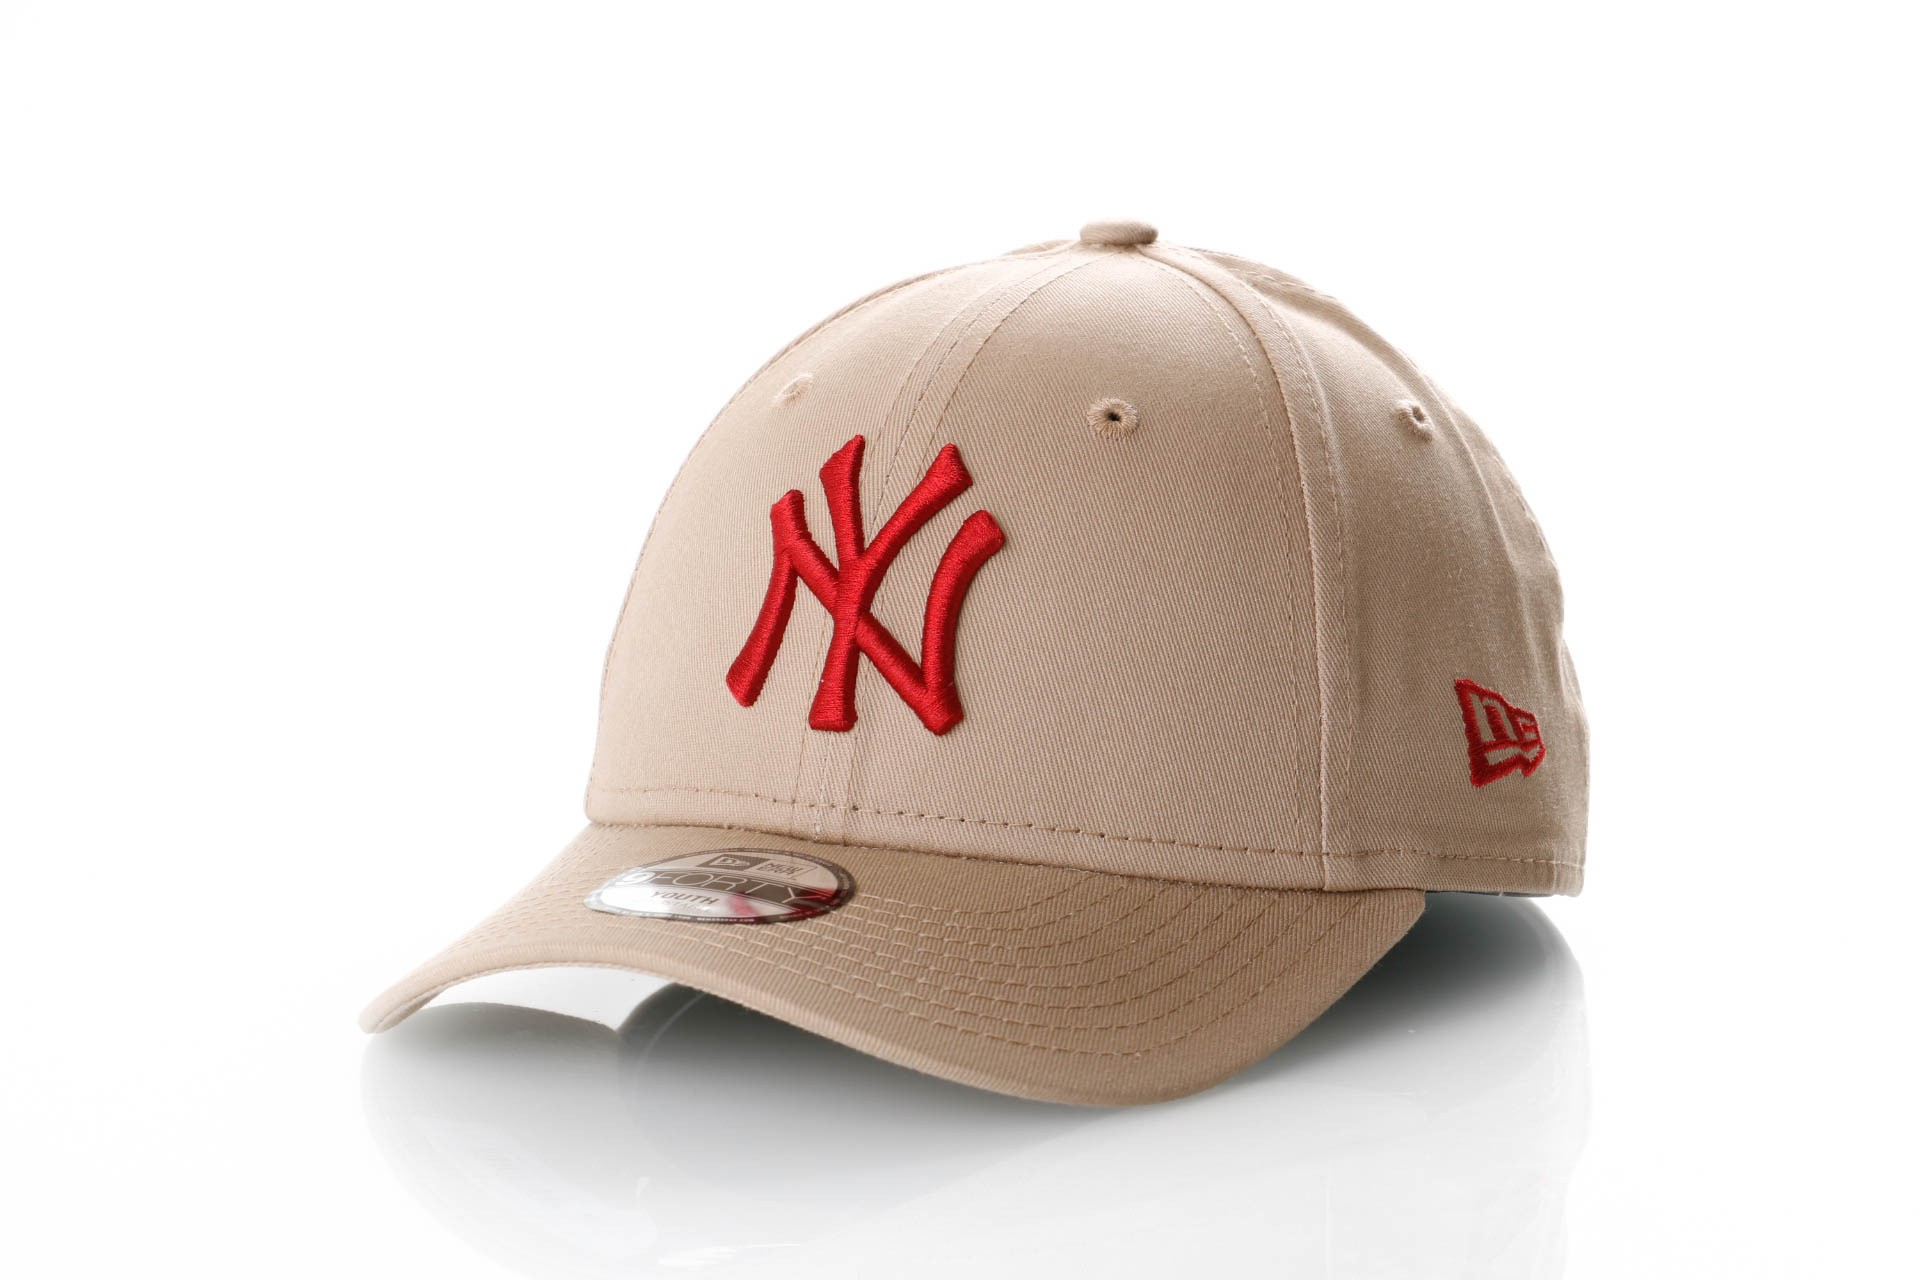 Afbeelding van New Era Kids League Essential 9Forty 11871492 Dad Cap Camel/Hot Red Mlb New York Yankees